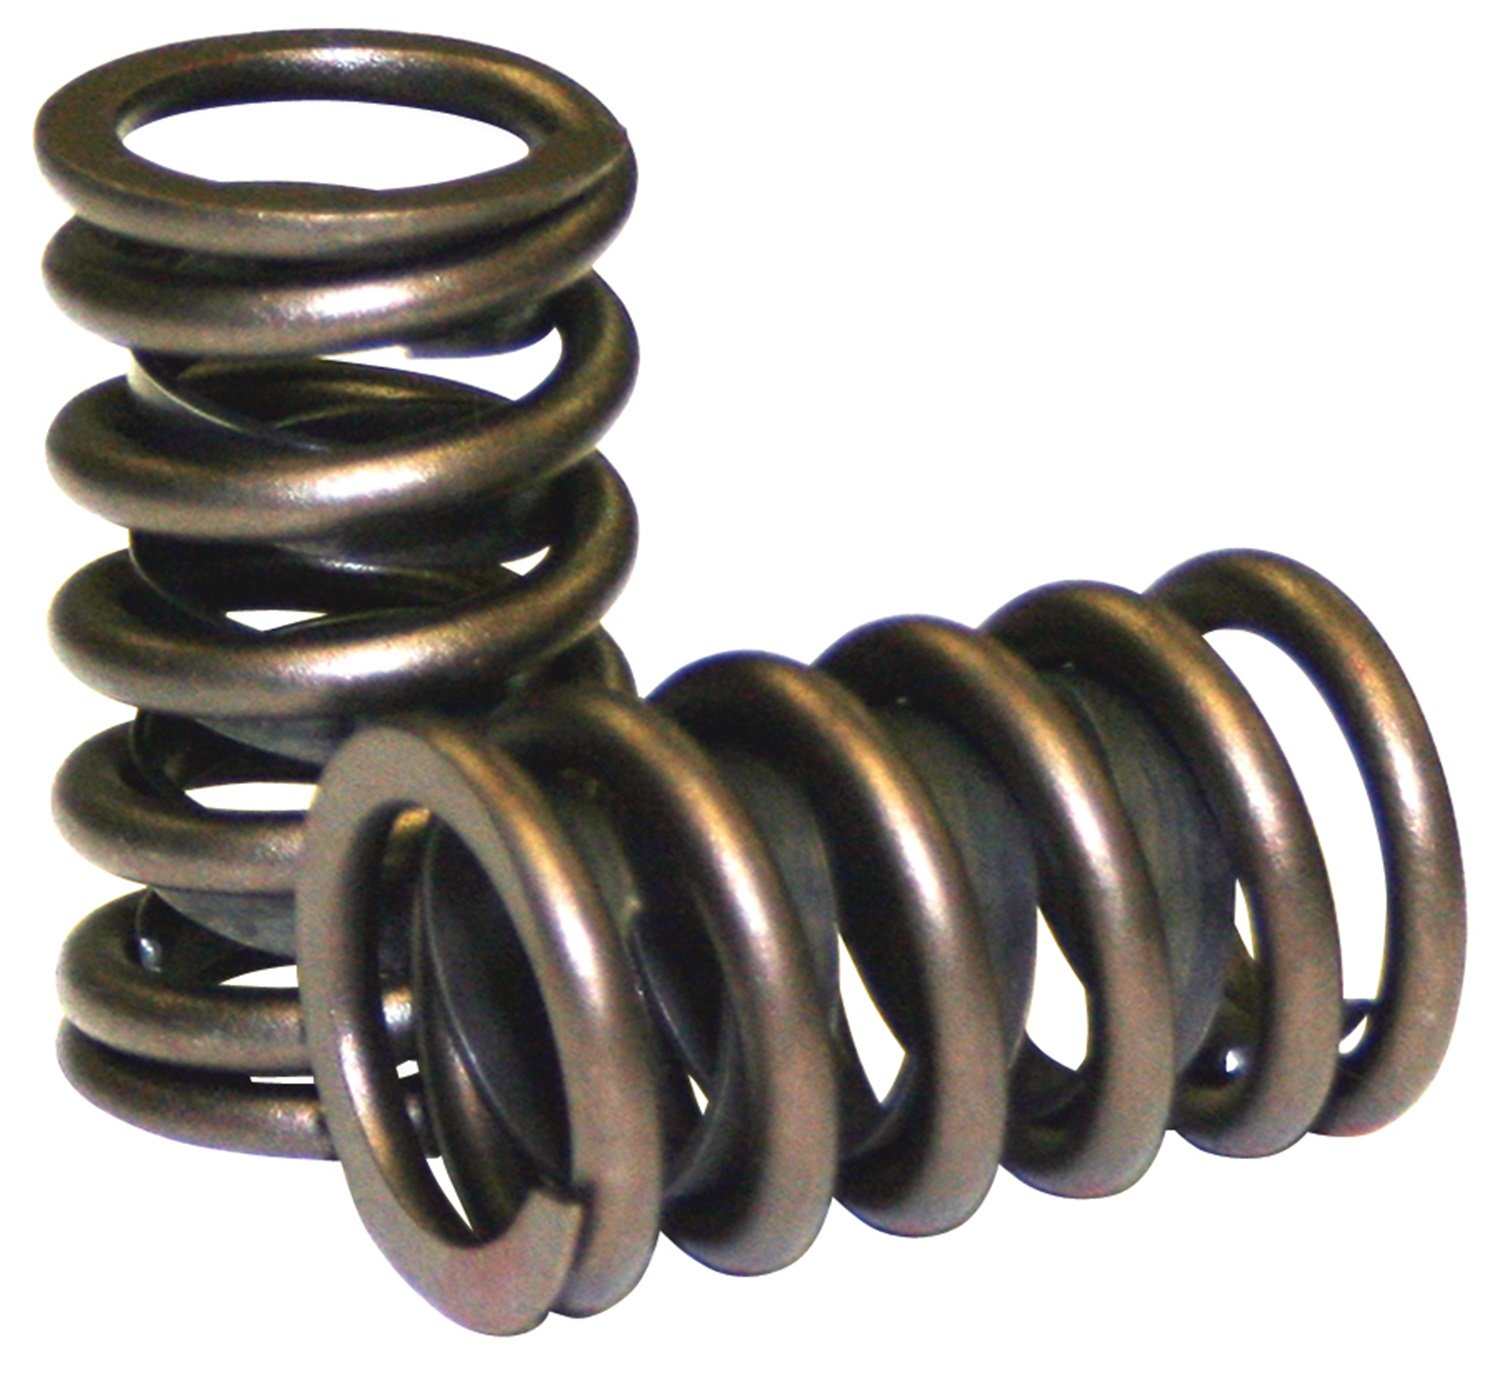 Howards Power /& Racing Equipment 98529 Spring 1.525 Valve Single s w//Damper 16